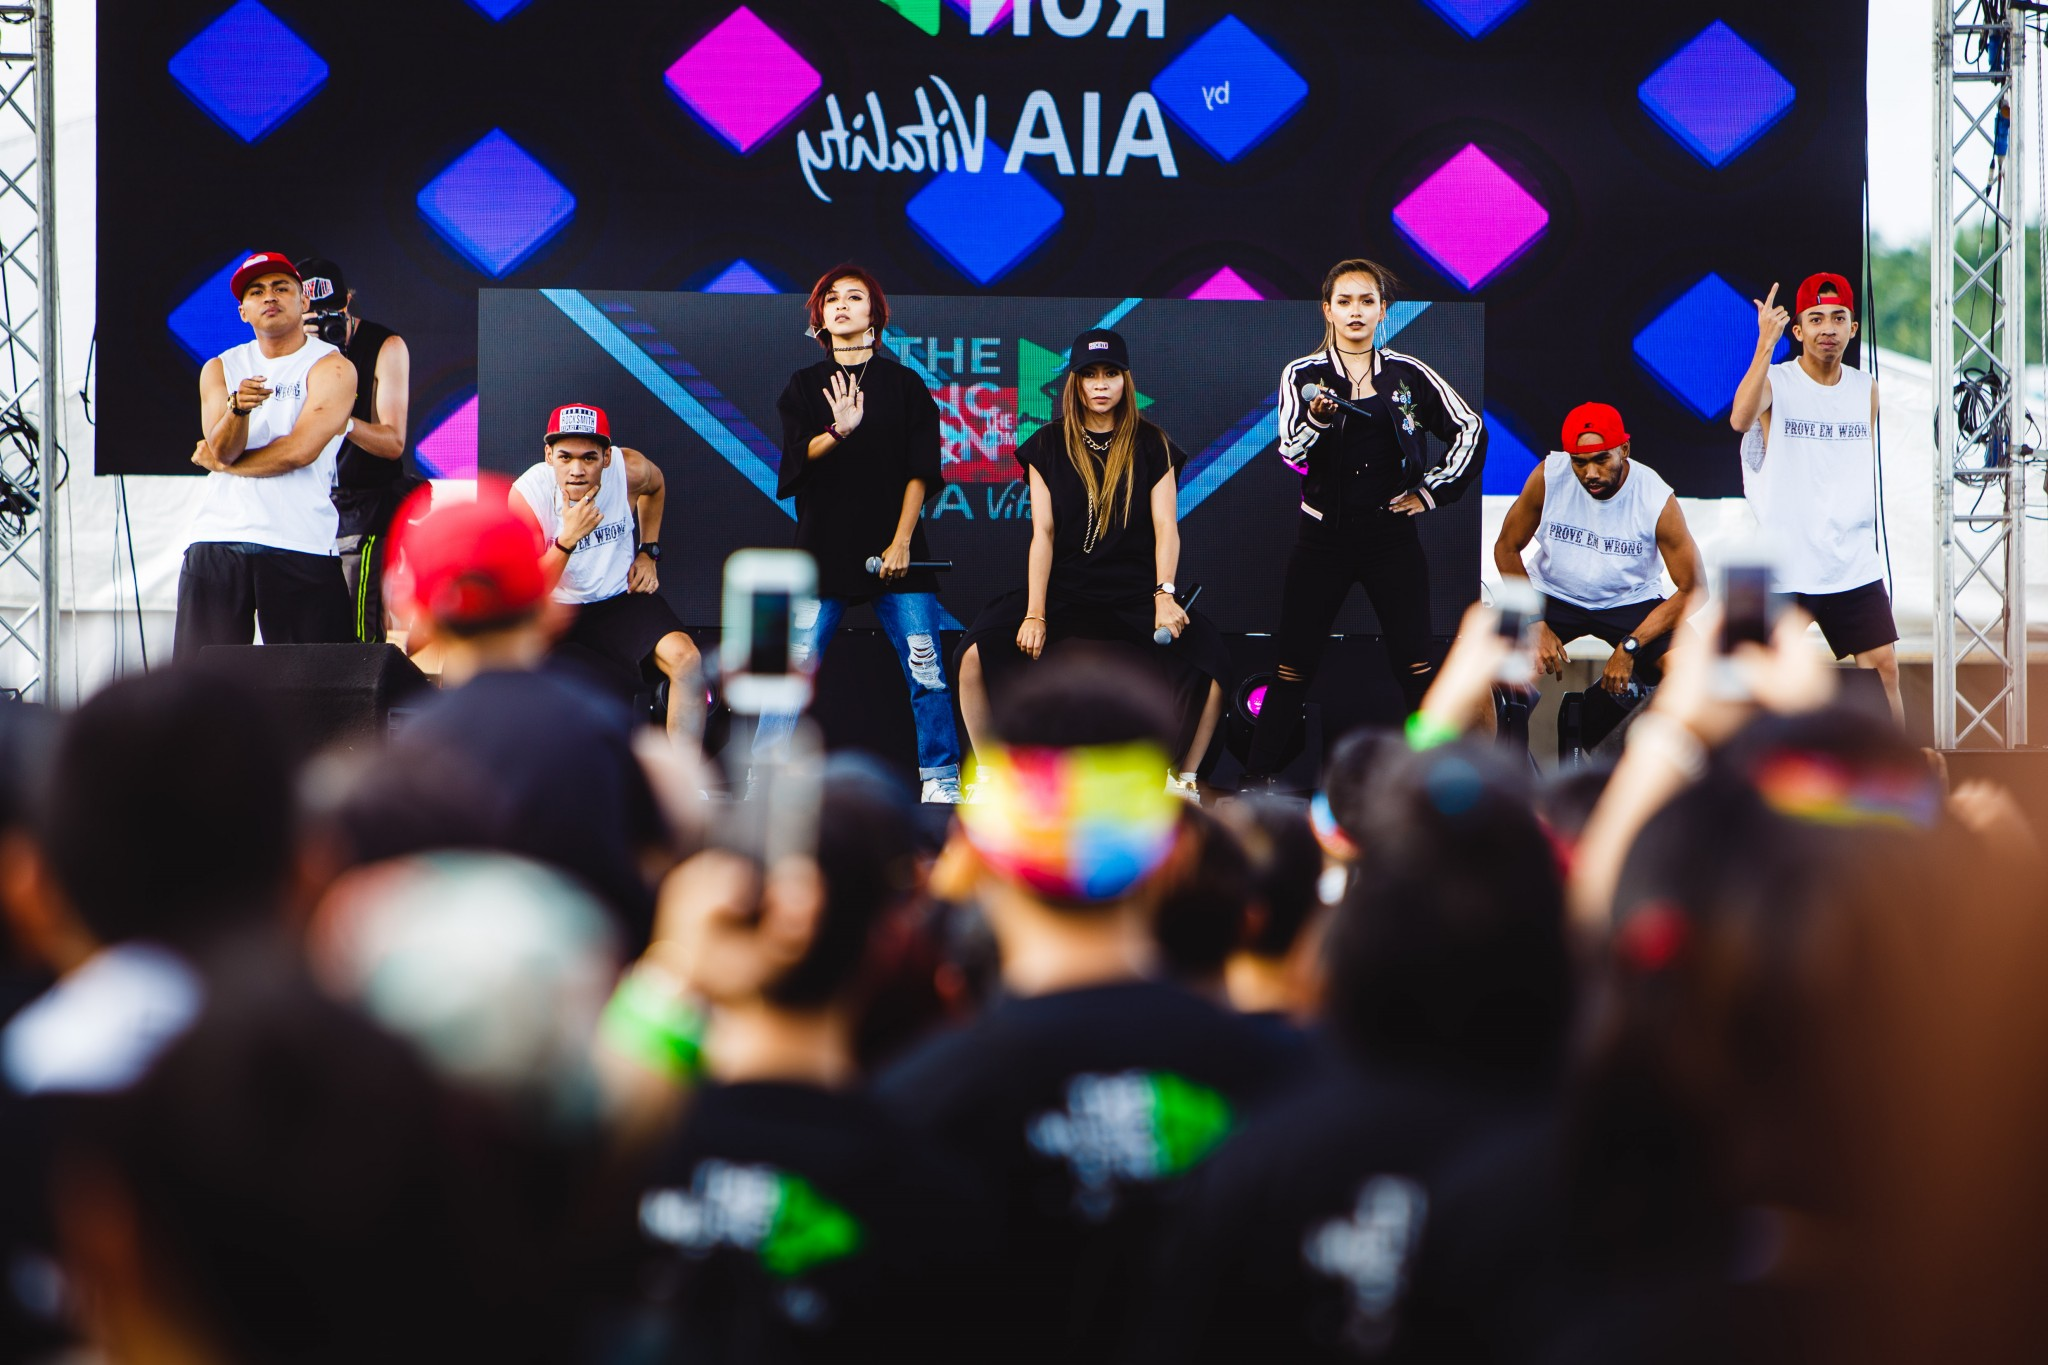 malaysian-pop-sensation-de-fam-enthralled-music-runnerstm-with-their-electric-performance-before-the-run